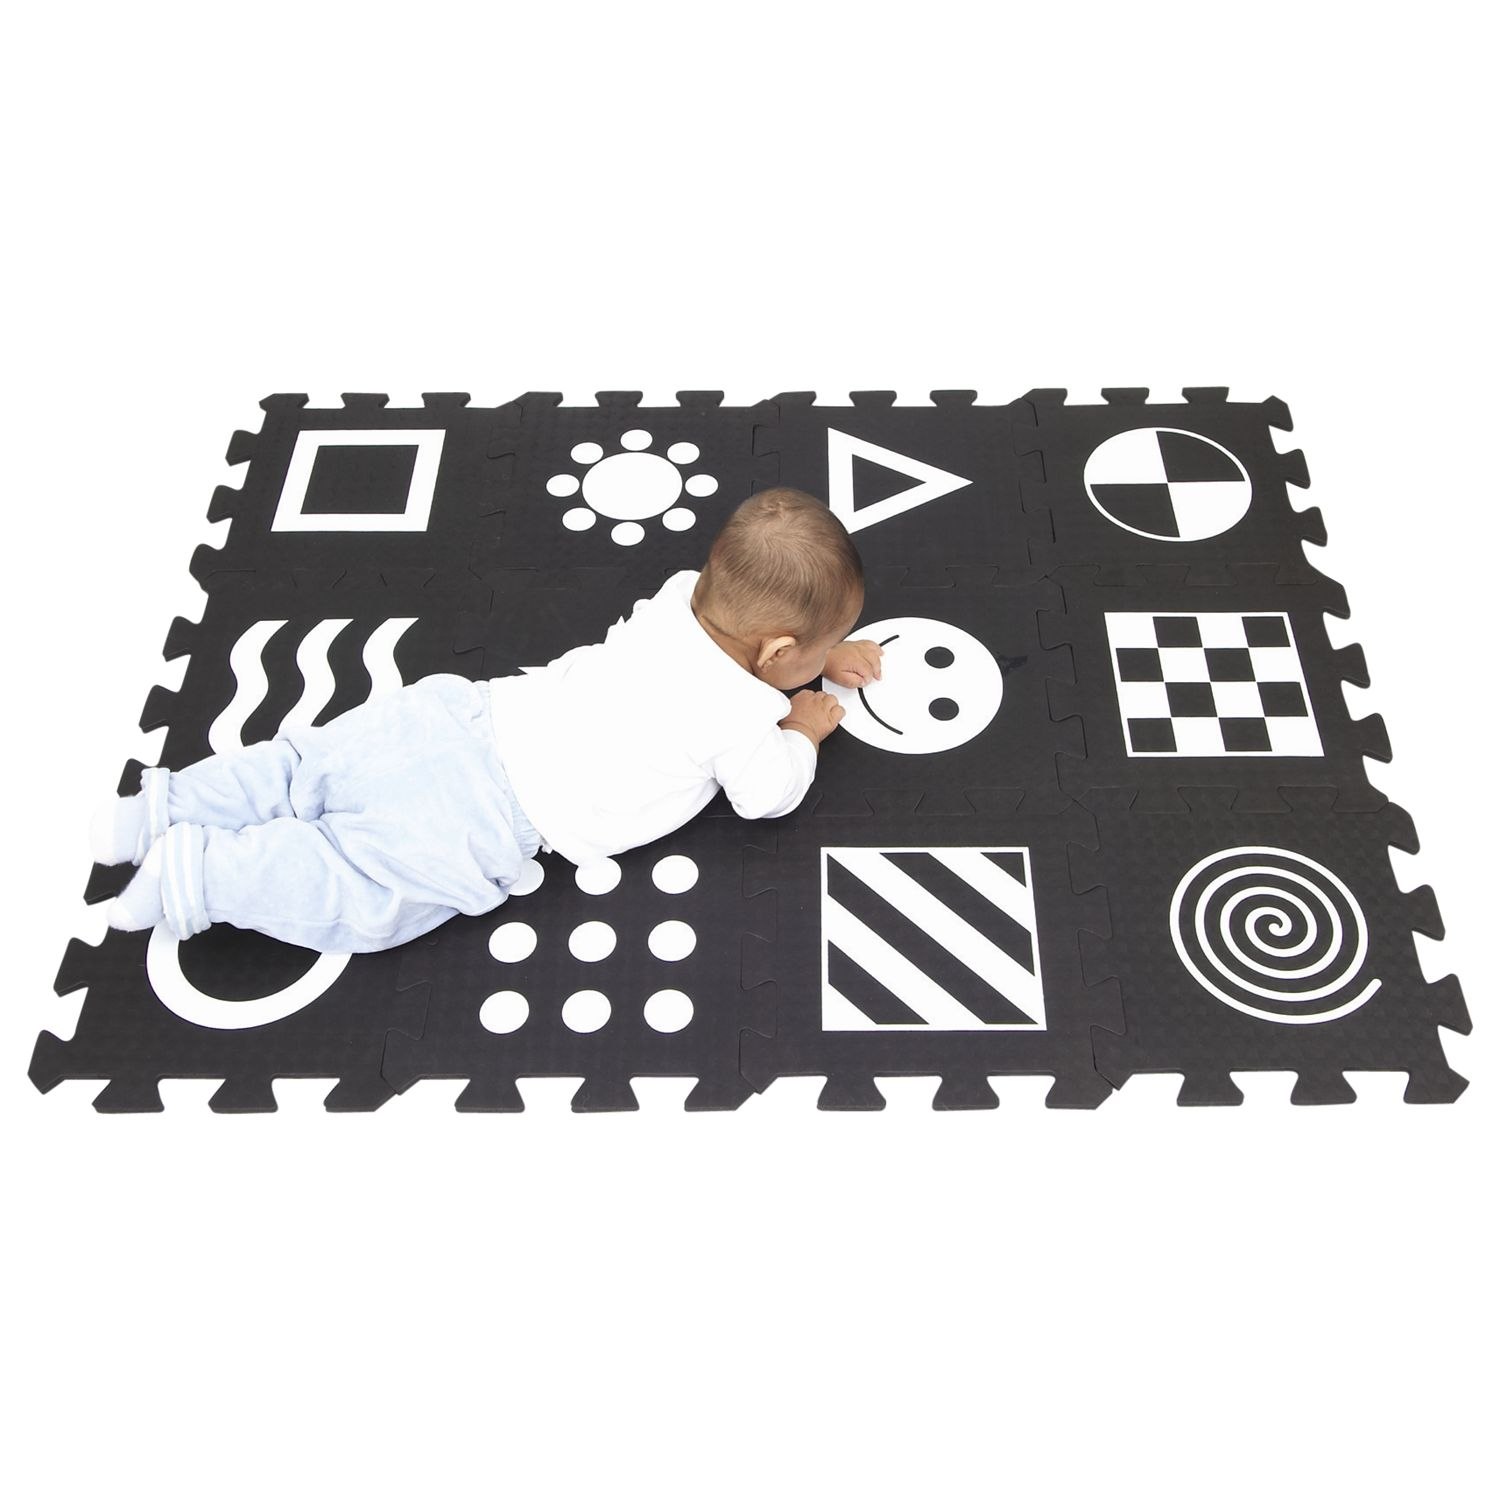 Soft Play Zone Baby Development Play Mat, Black/White